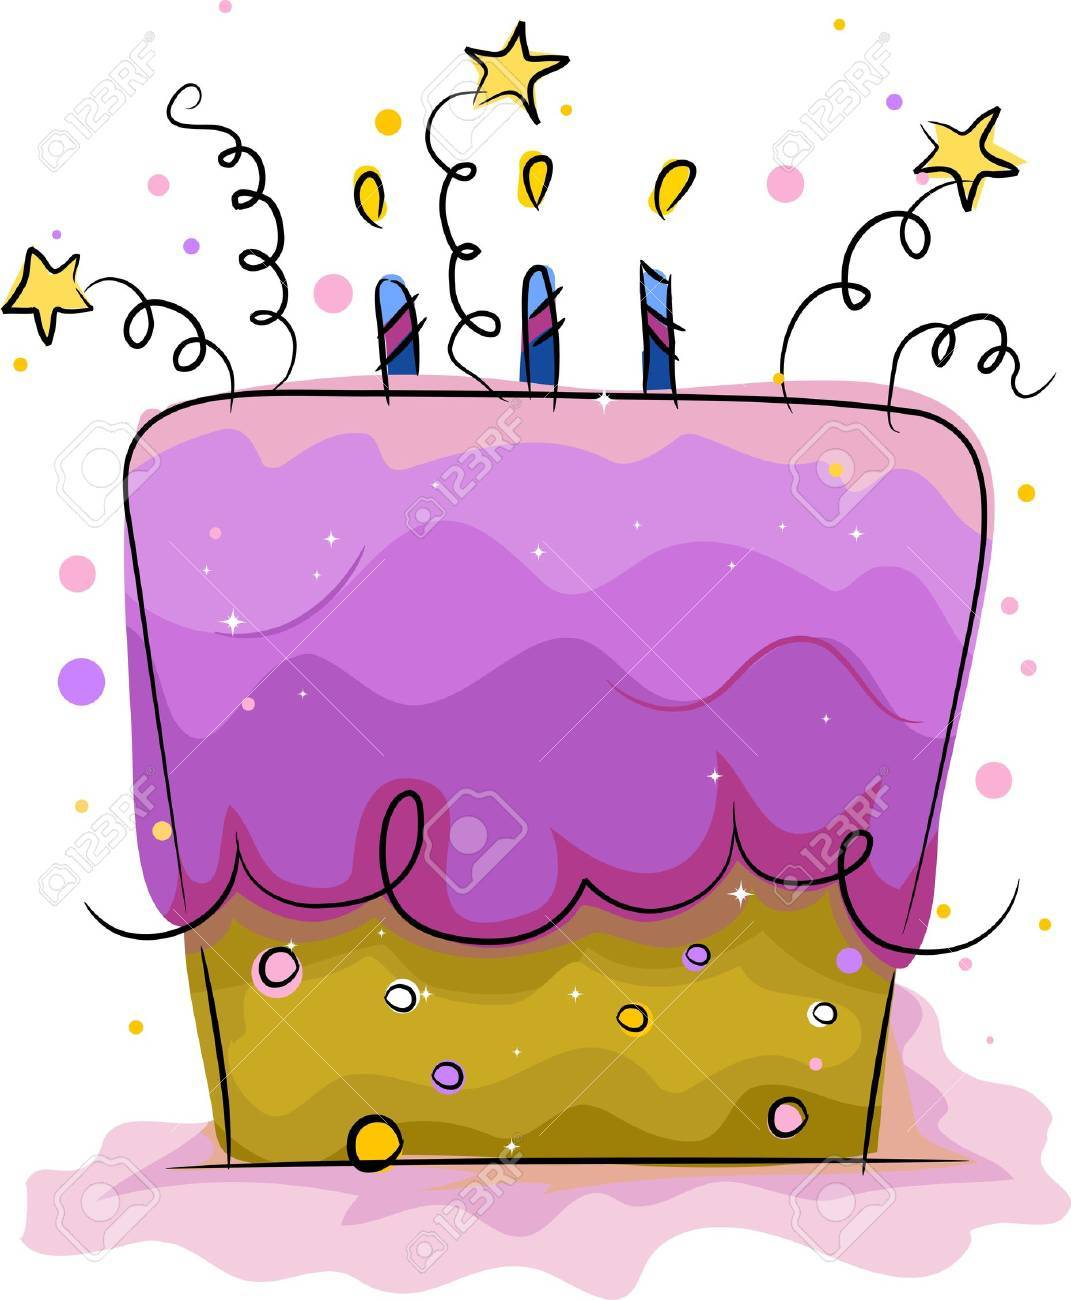 Illustration of a Birthday Cake Decorated with Stars Stock Illustration - 9456844